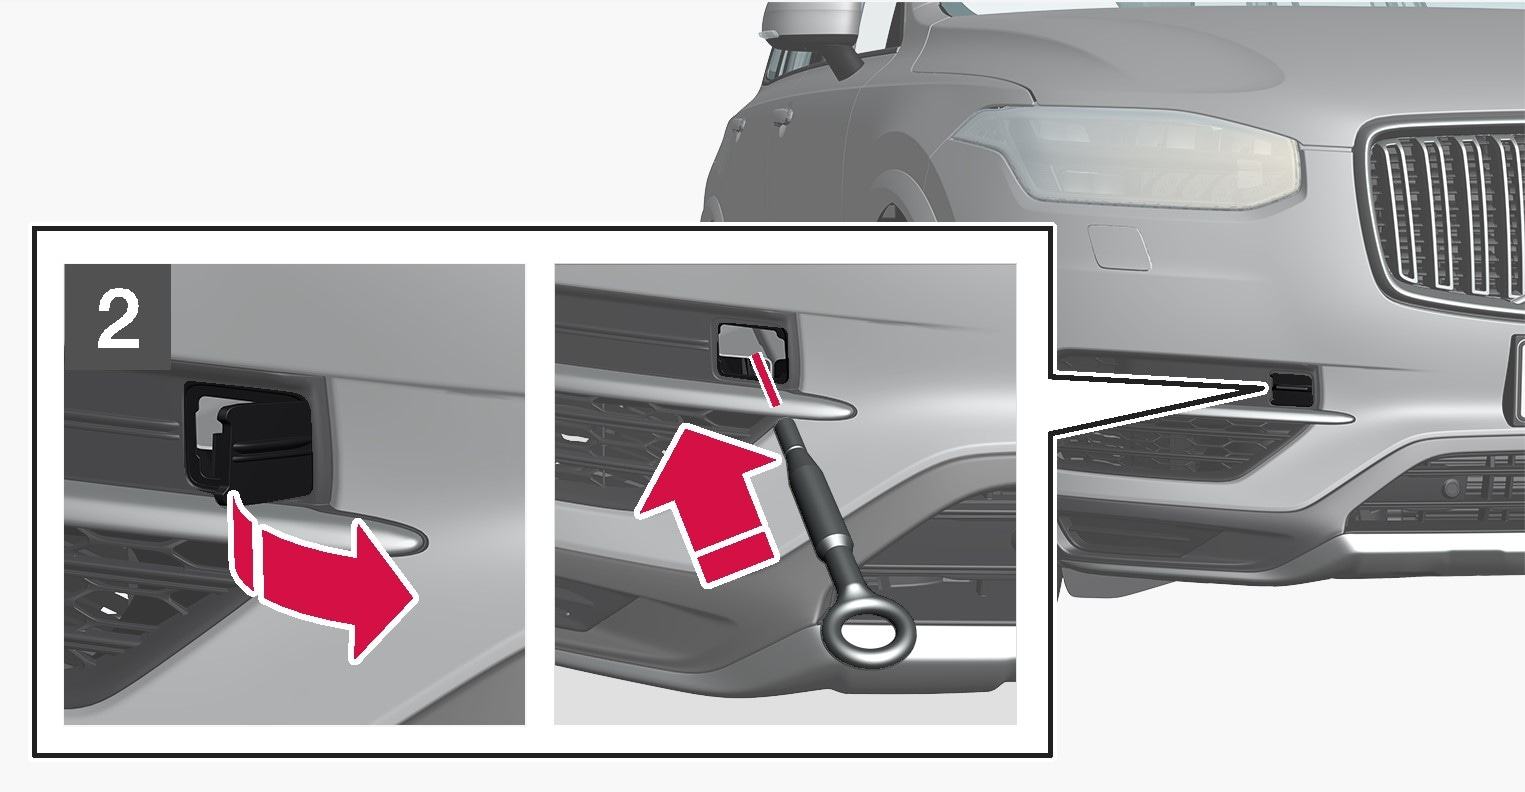 P5-1617-XC90-towing eyelet front step 2